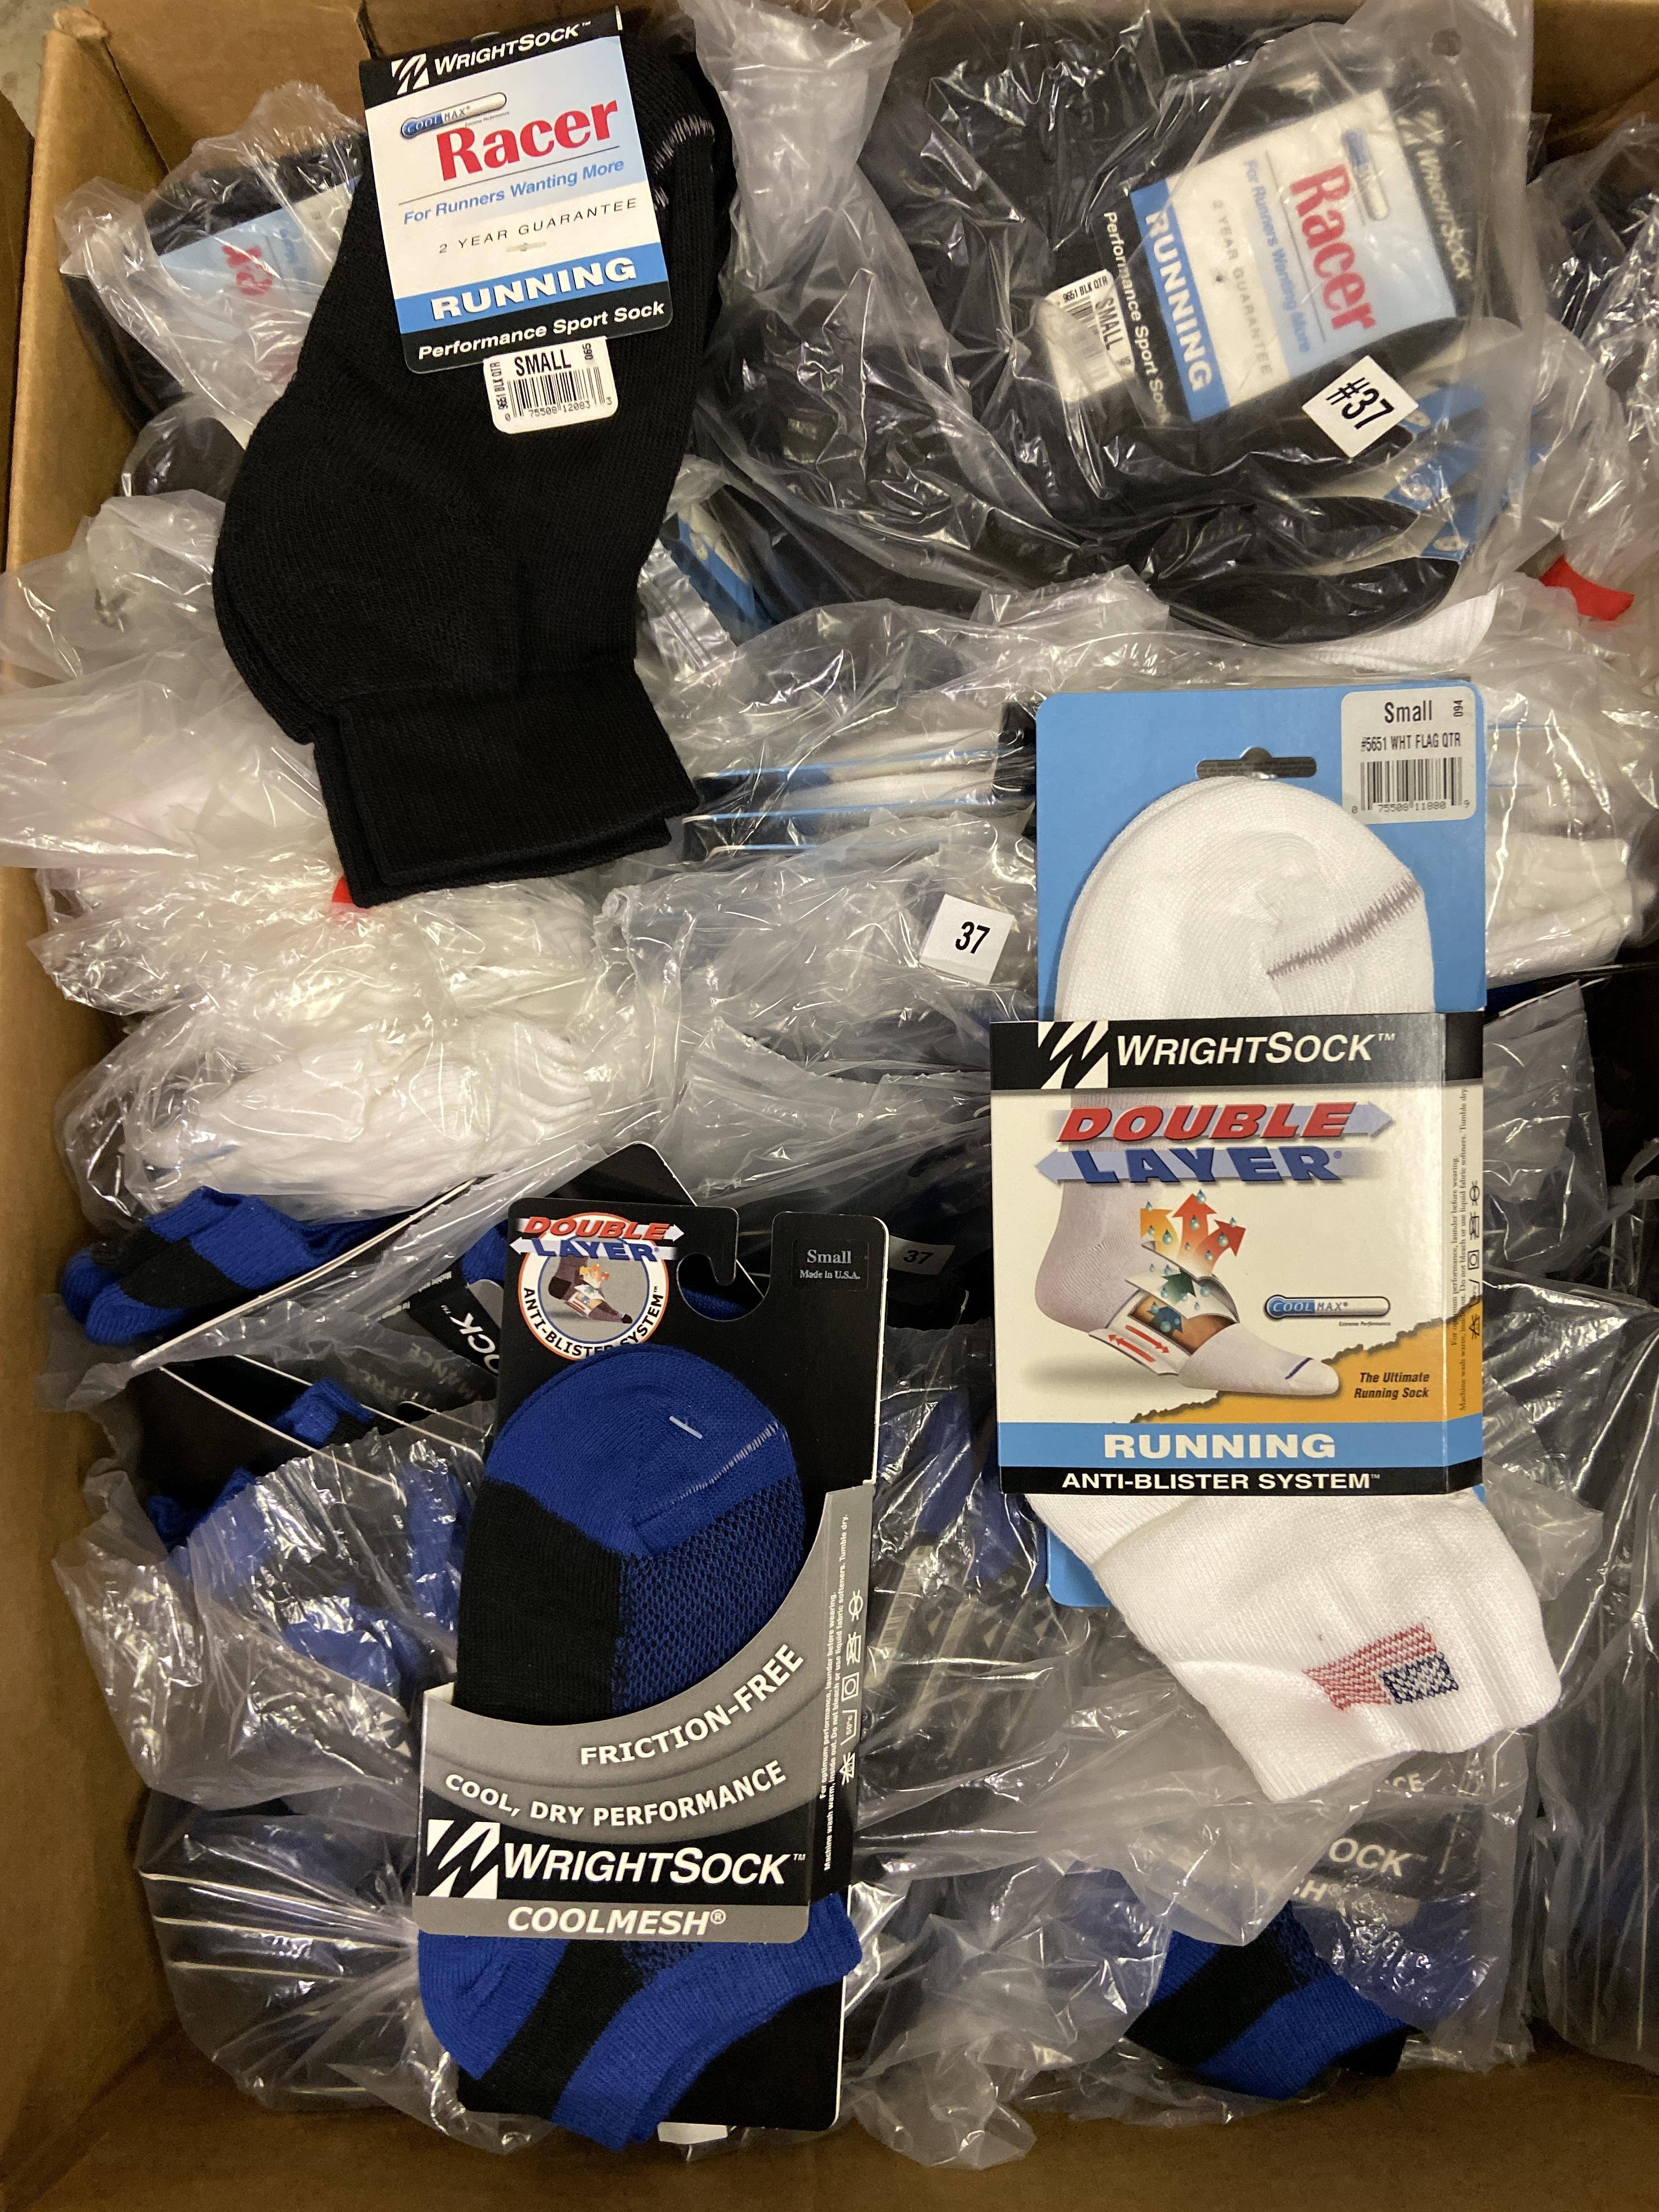 Lot 18 - 250+ packs of New Socks, Wrightsock Running and Coolmesh, Double Layer, Various Colors, USA Flag,